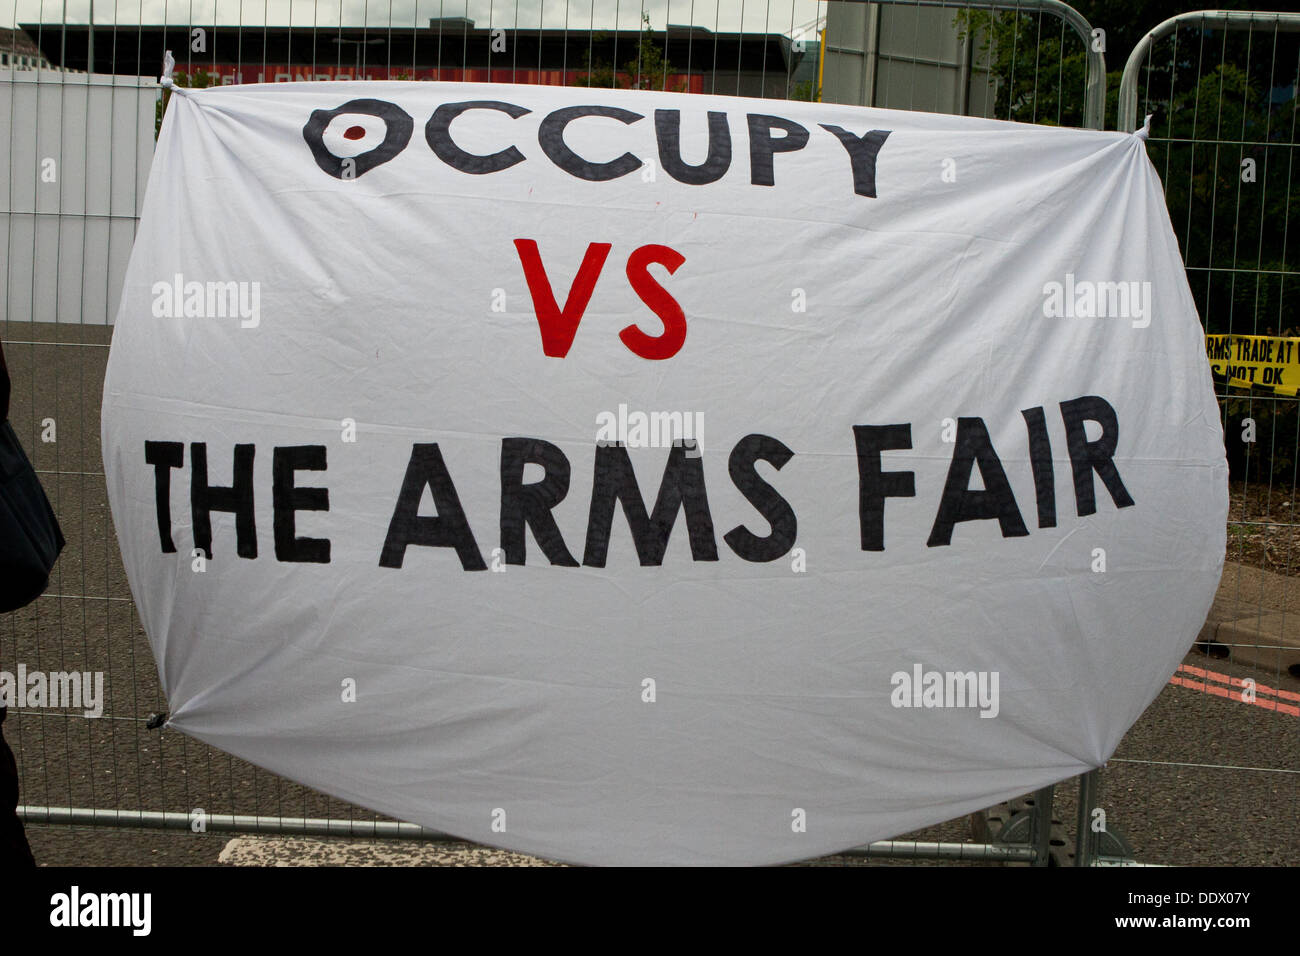 London, UK. 8th Sep, 2013. Occupy Vs The Arms Fair banner at protest against the Defence Security and Equipment Stock Photo